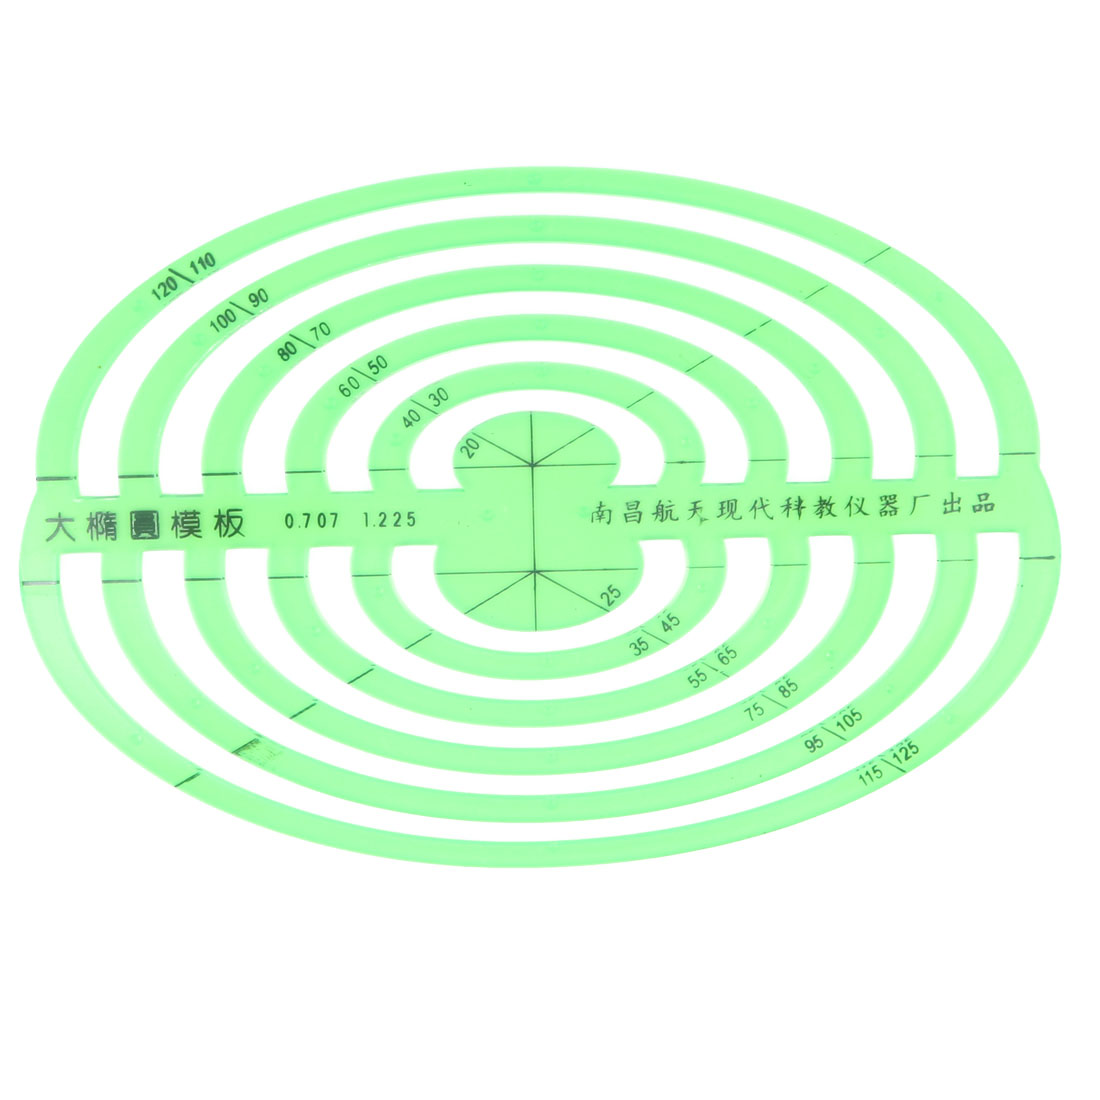 School Office Students Oval Circle Measuring Drawing Template Ruler Stationery by